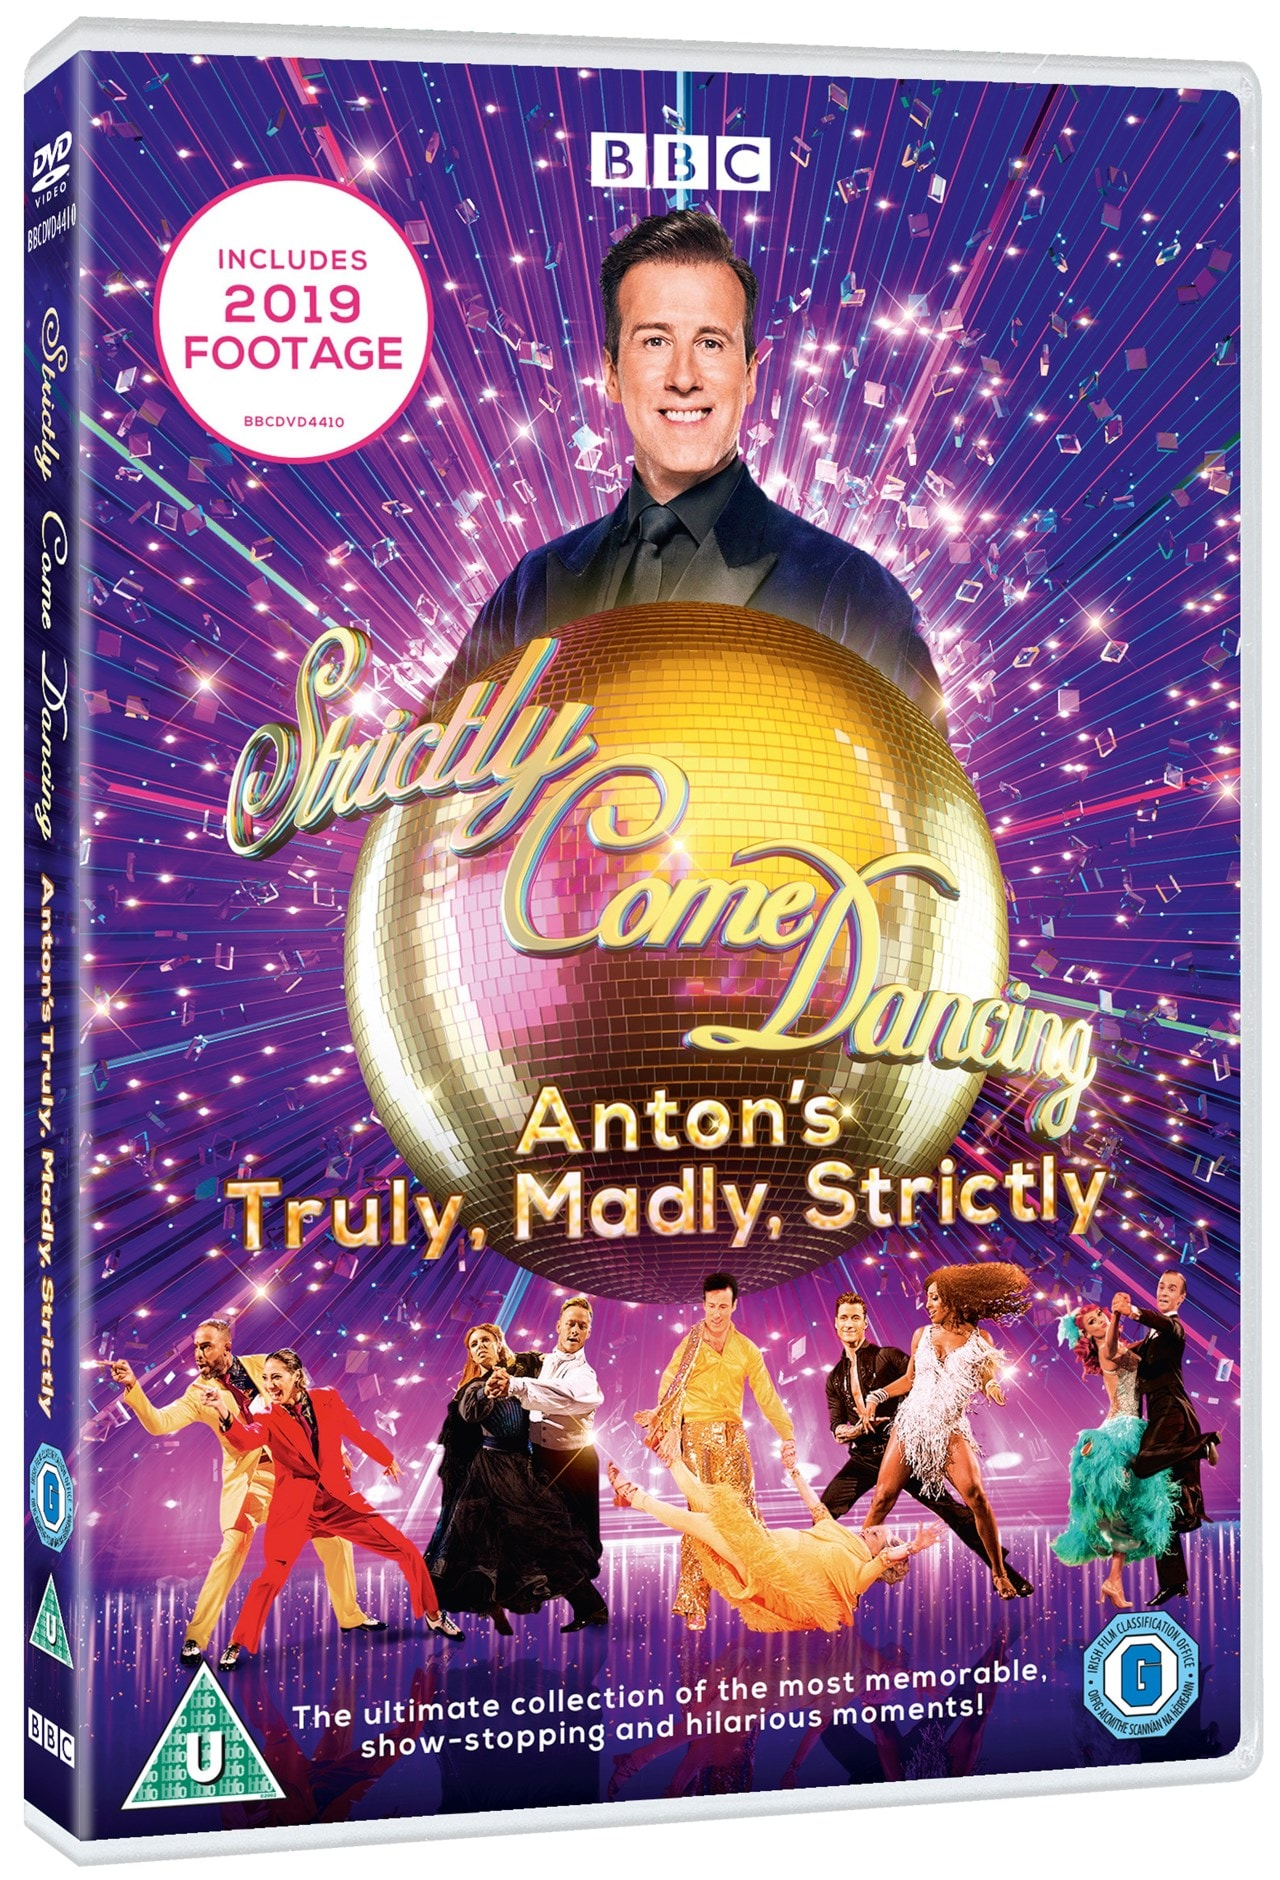 Strictly Come Dancing: Anton's Truly, Madly, Strictly - 2